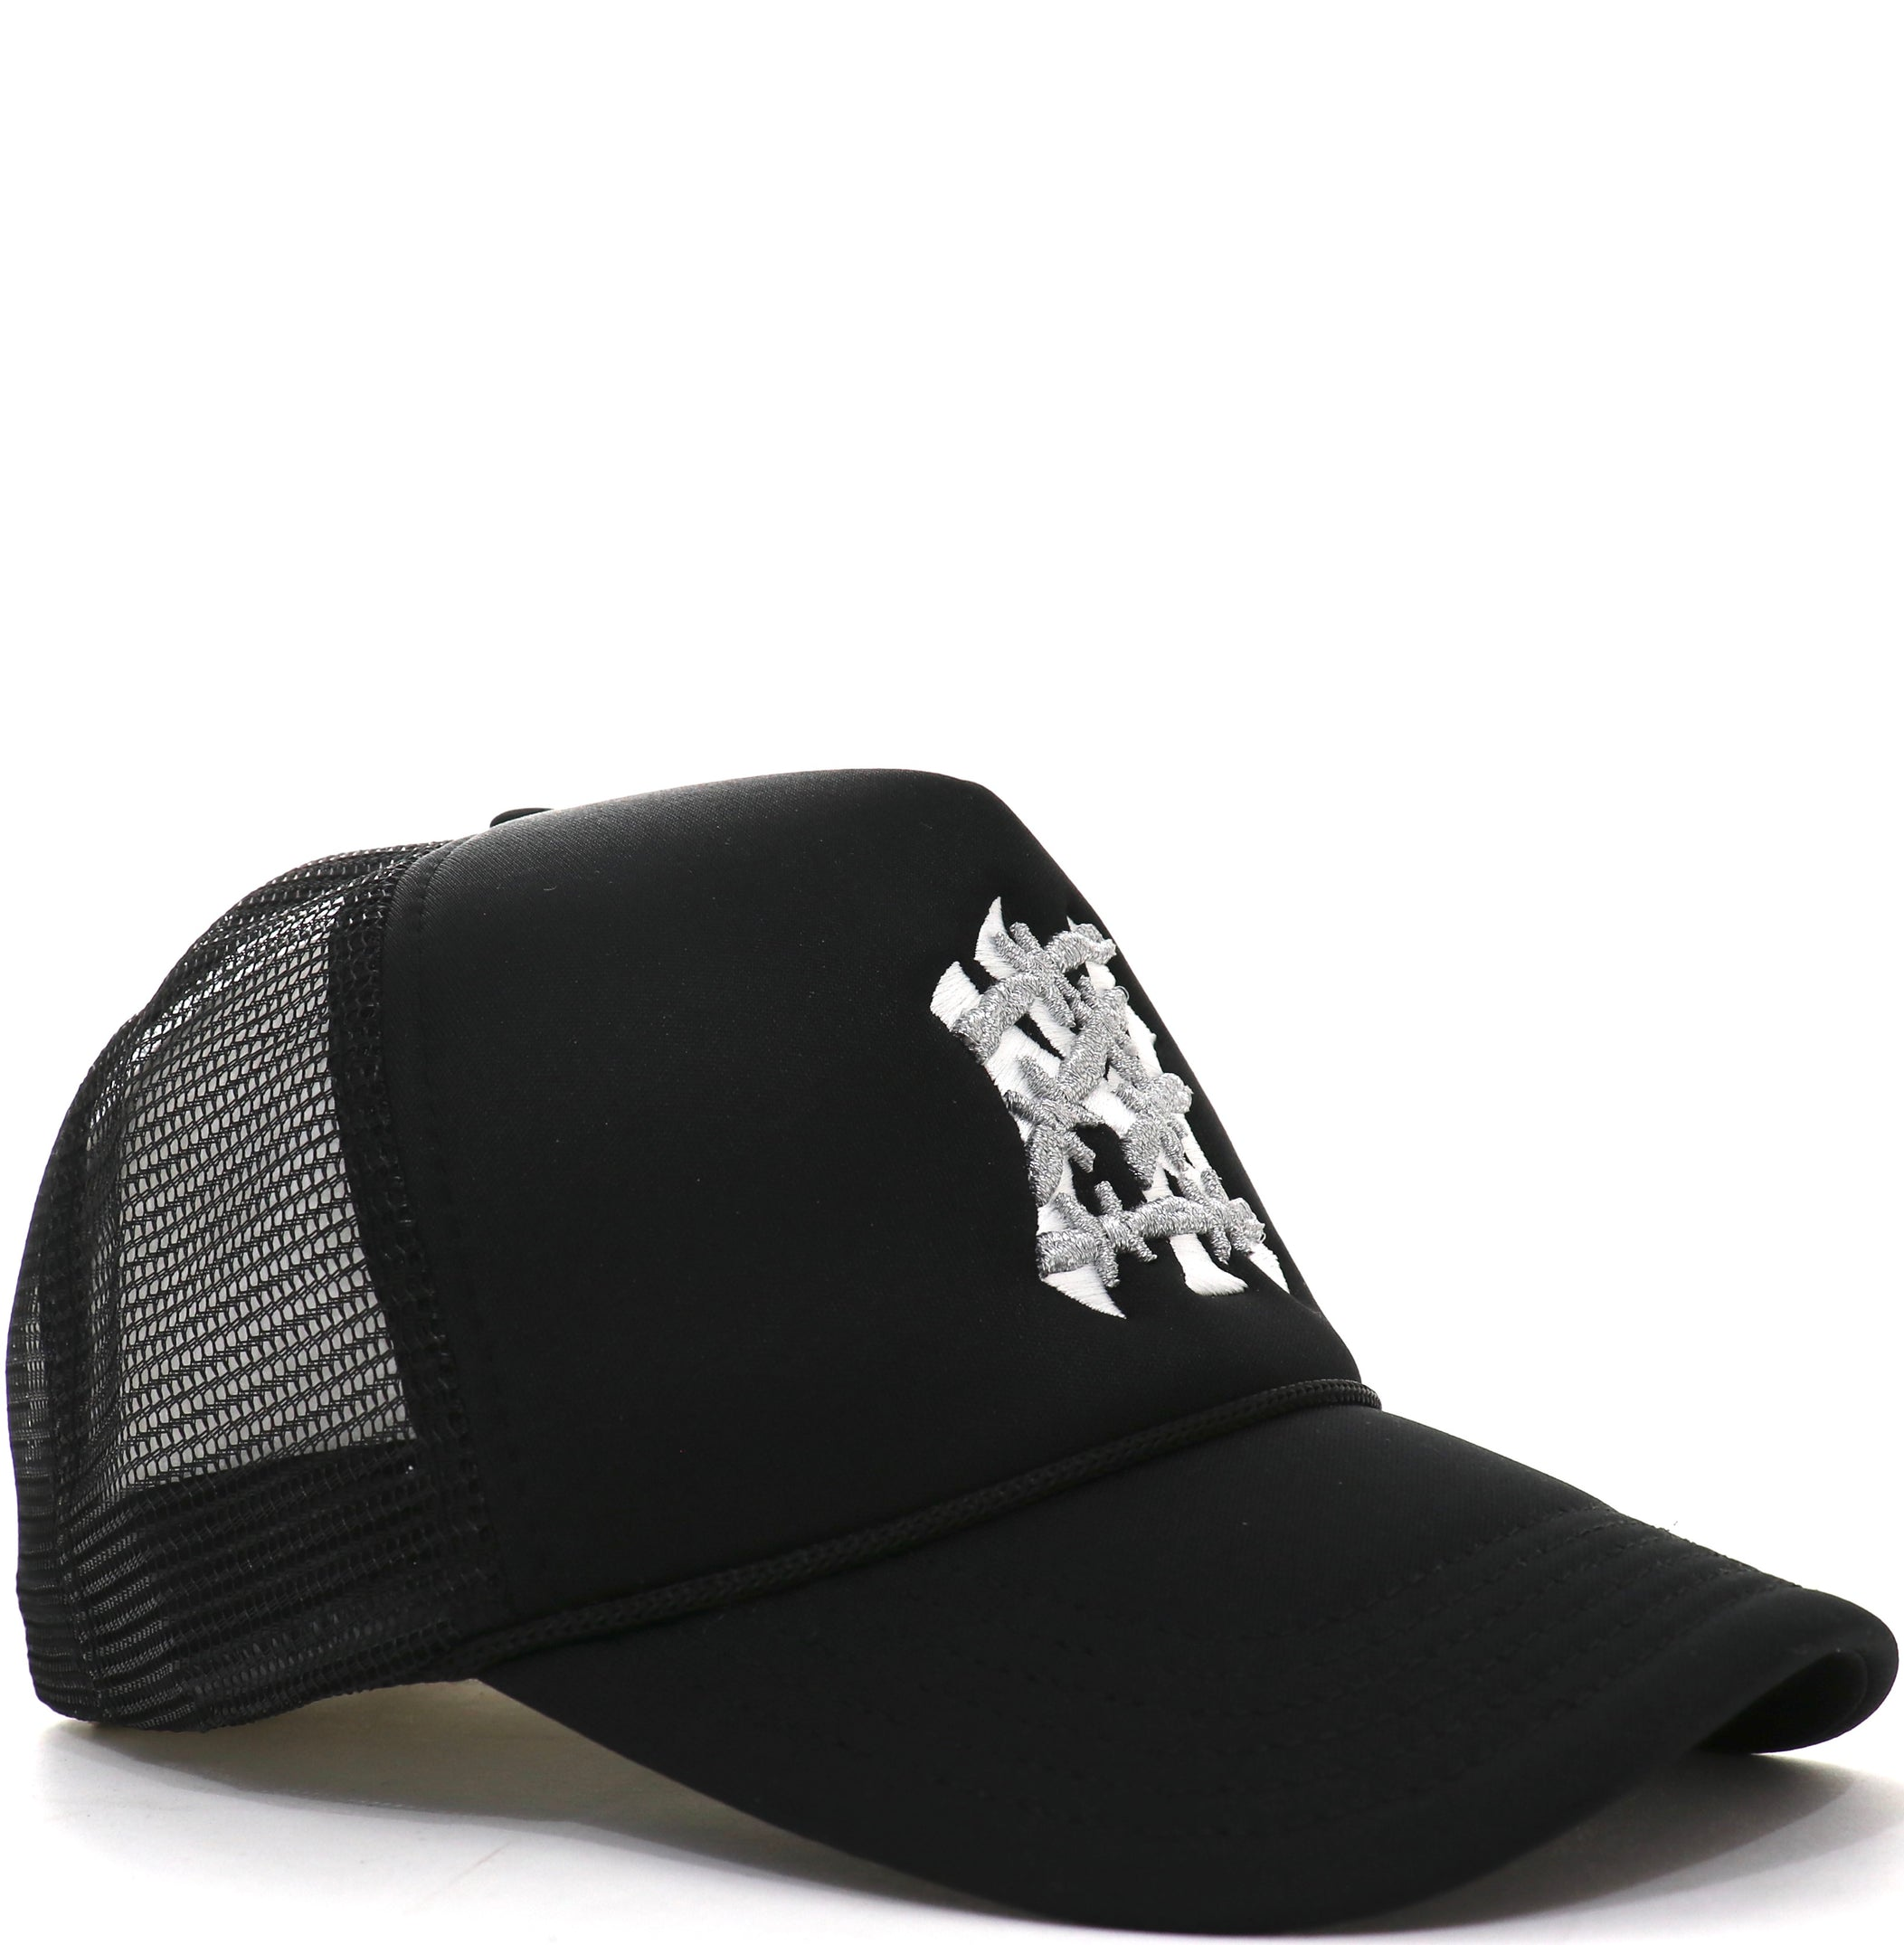 1ee34f42241 Baws King Dad Hat – ECtrendsetters